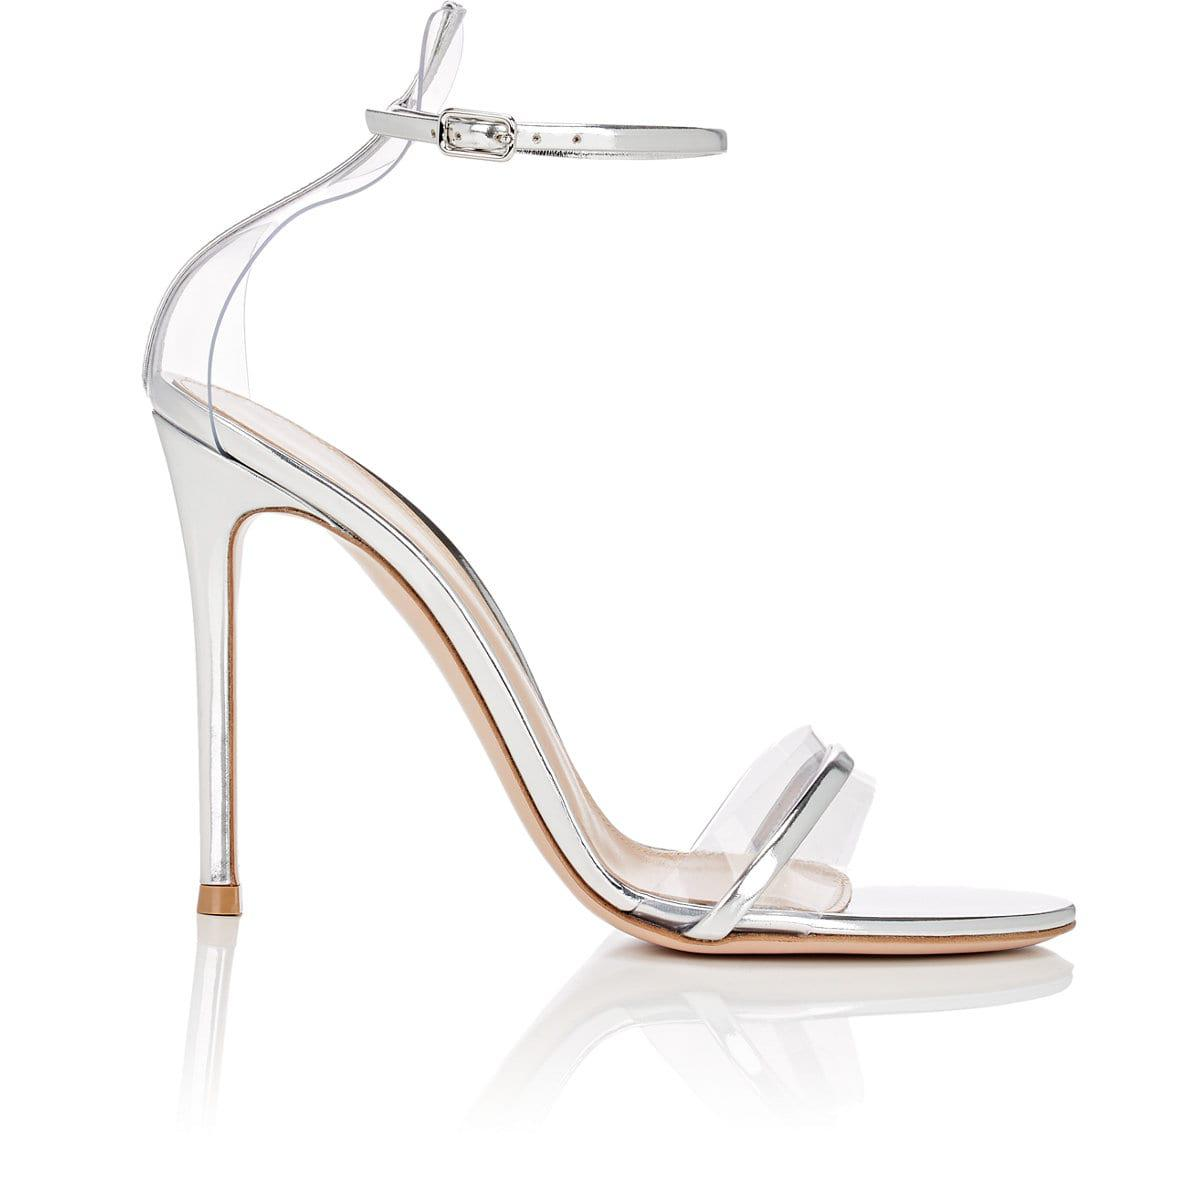 d88a33d076ce6 Lyst - Gianvito Rossi G String Satin   Pvc Sandals in Metallic